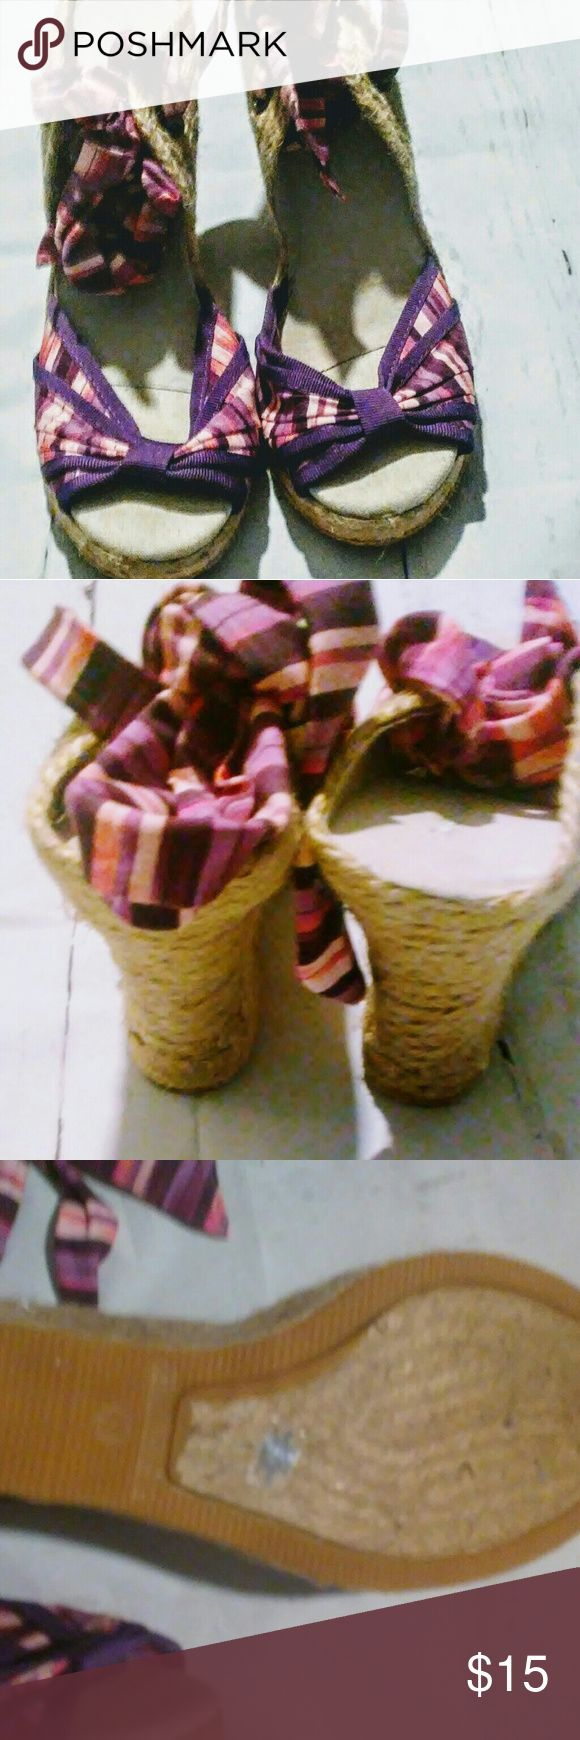 Old Navy Espadrilles Pink and Purple 11M New Without Tags Old Navy Women's Edpadrilles fabric Pink and Purple size 11M Wedges that wrap around ankle Old Navy Shoes Espadrilles